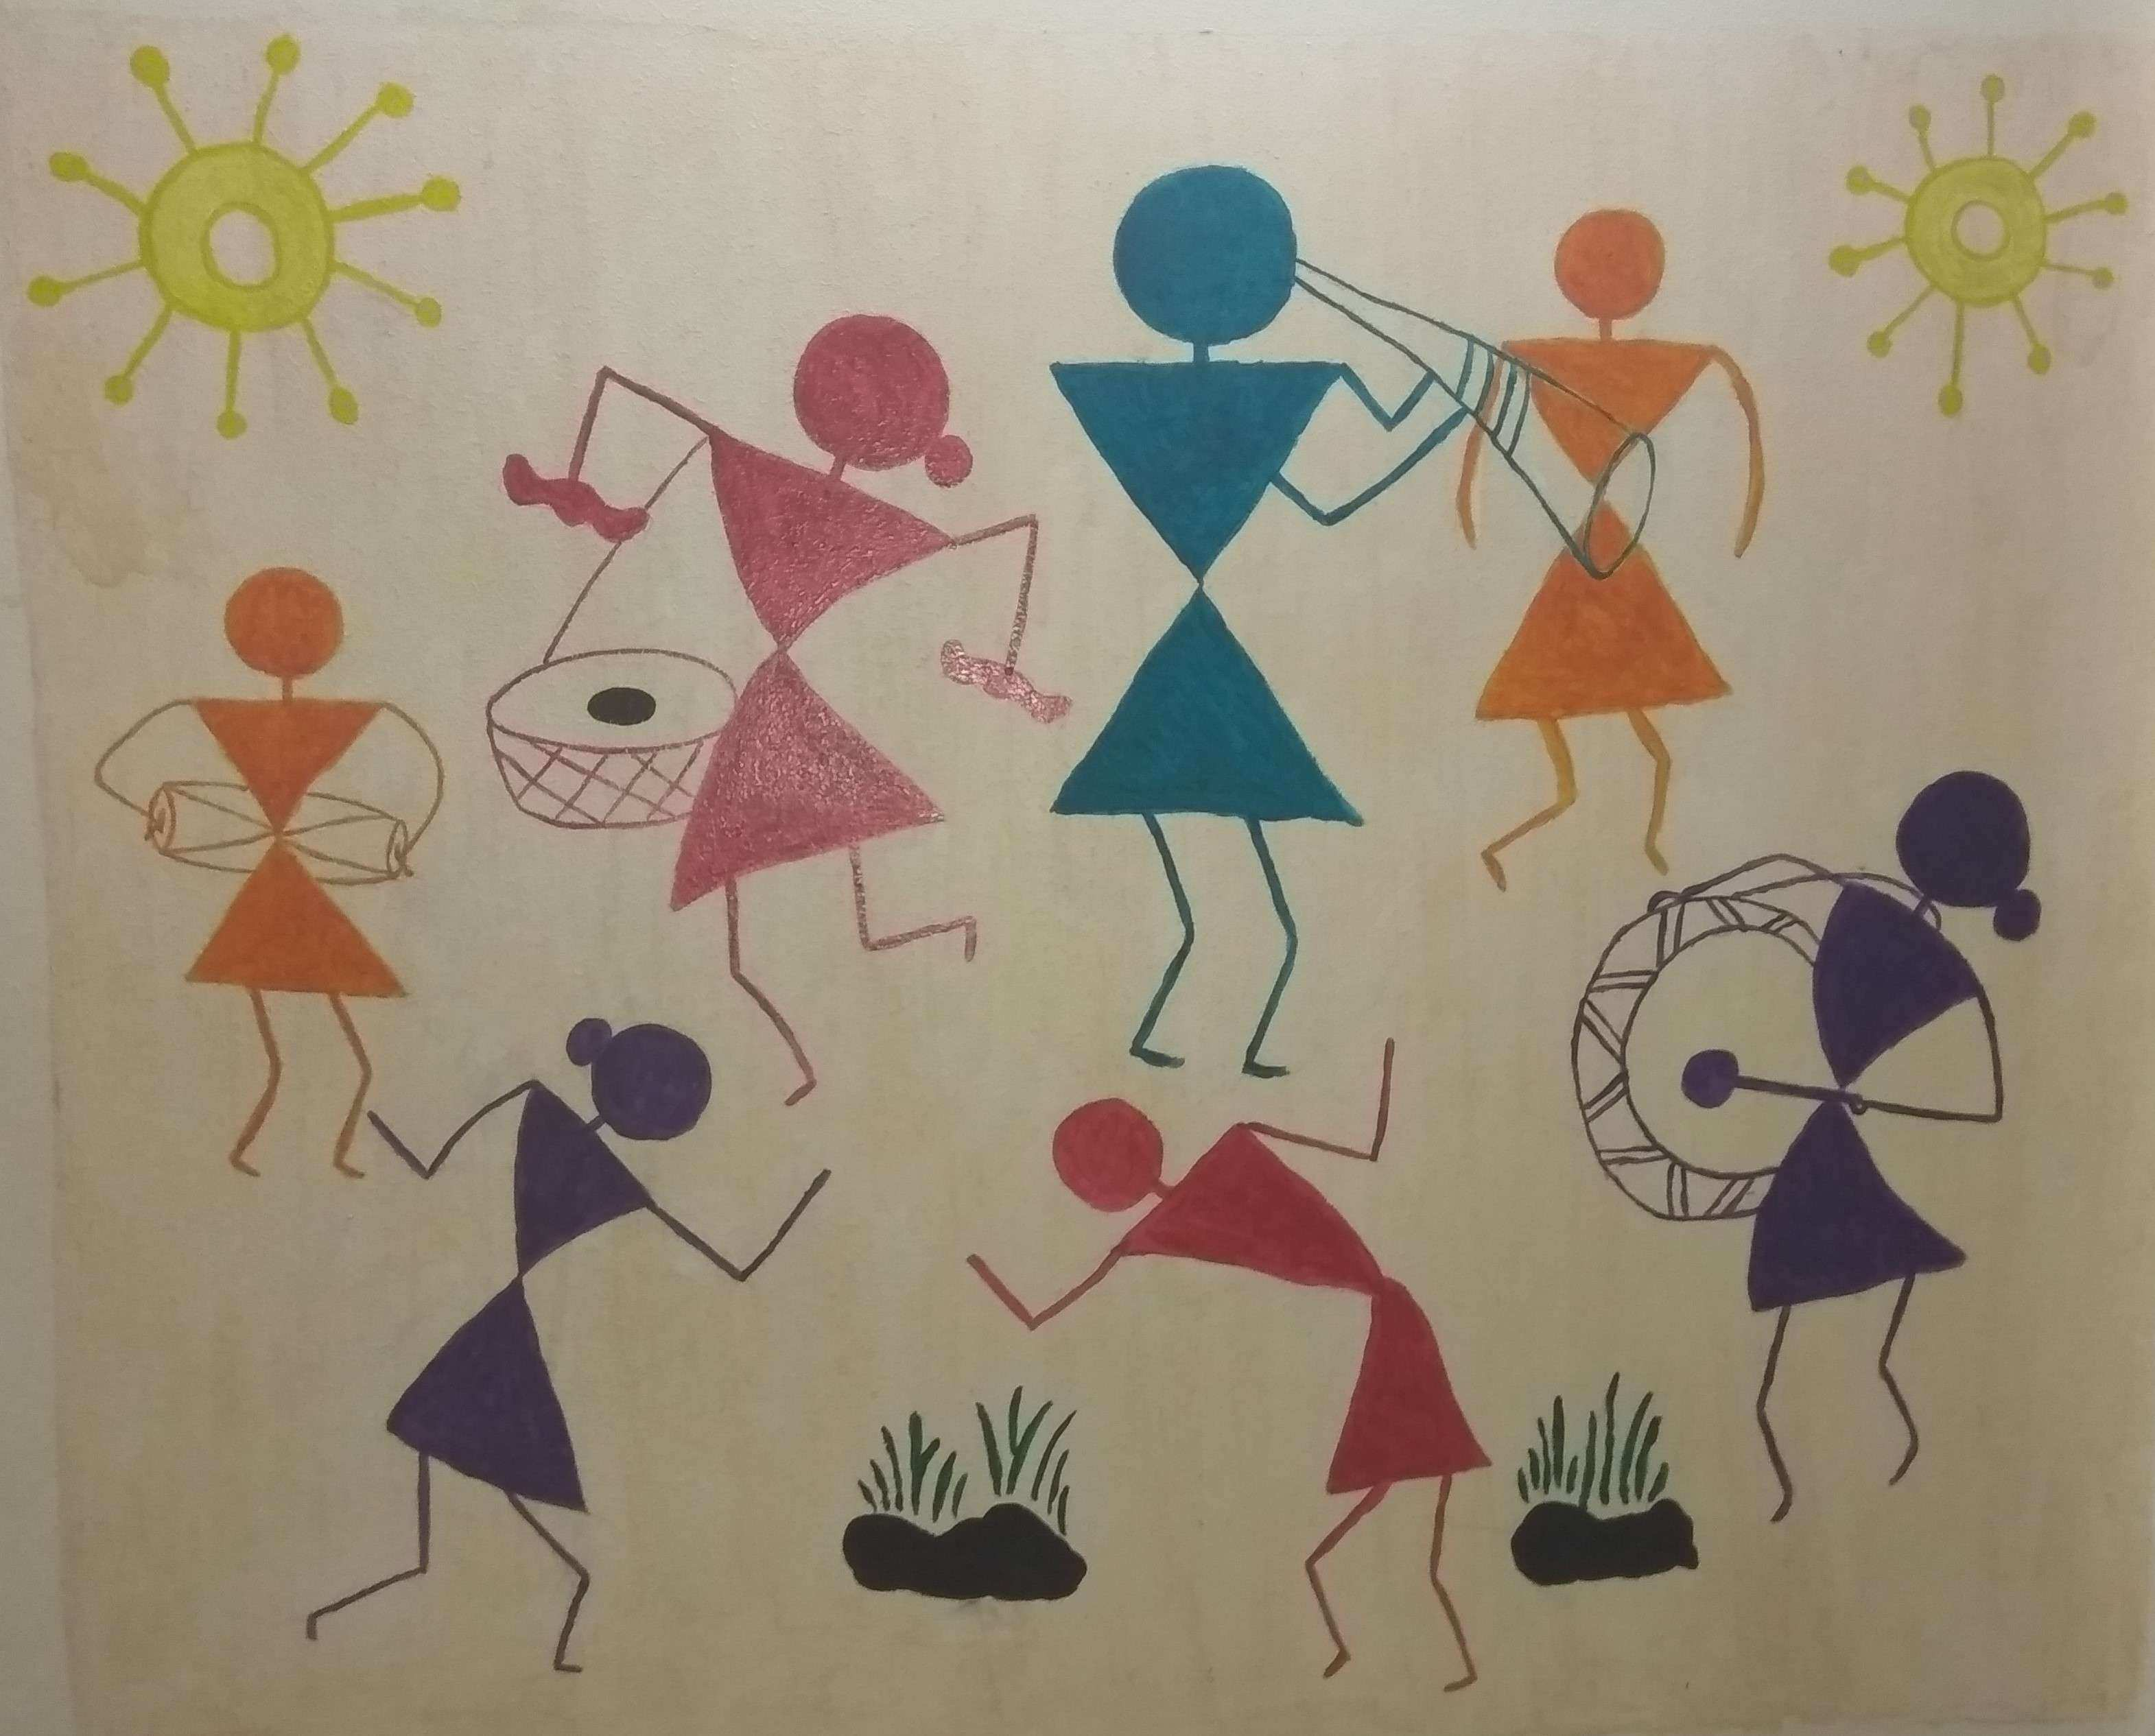 Warli Paining on Wall – Colorful Art Space